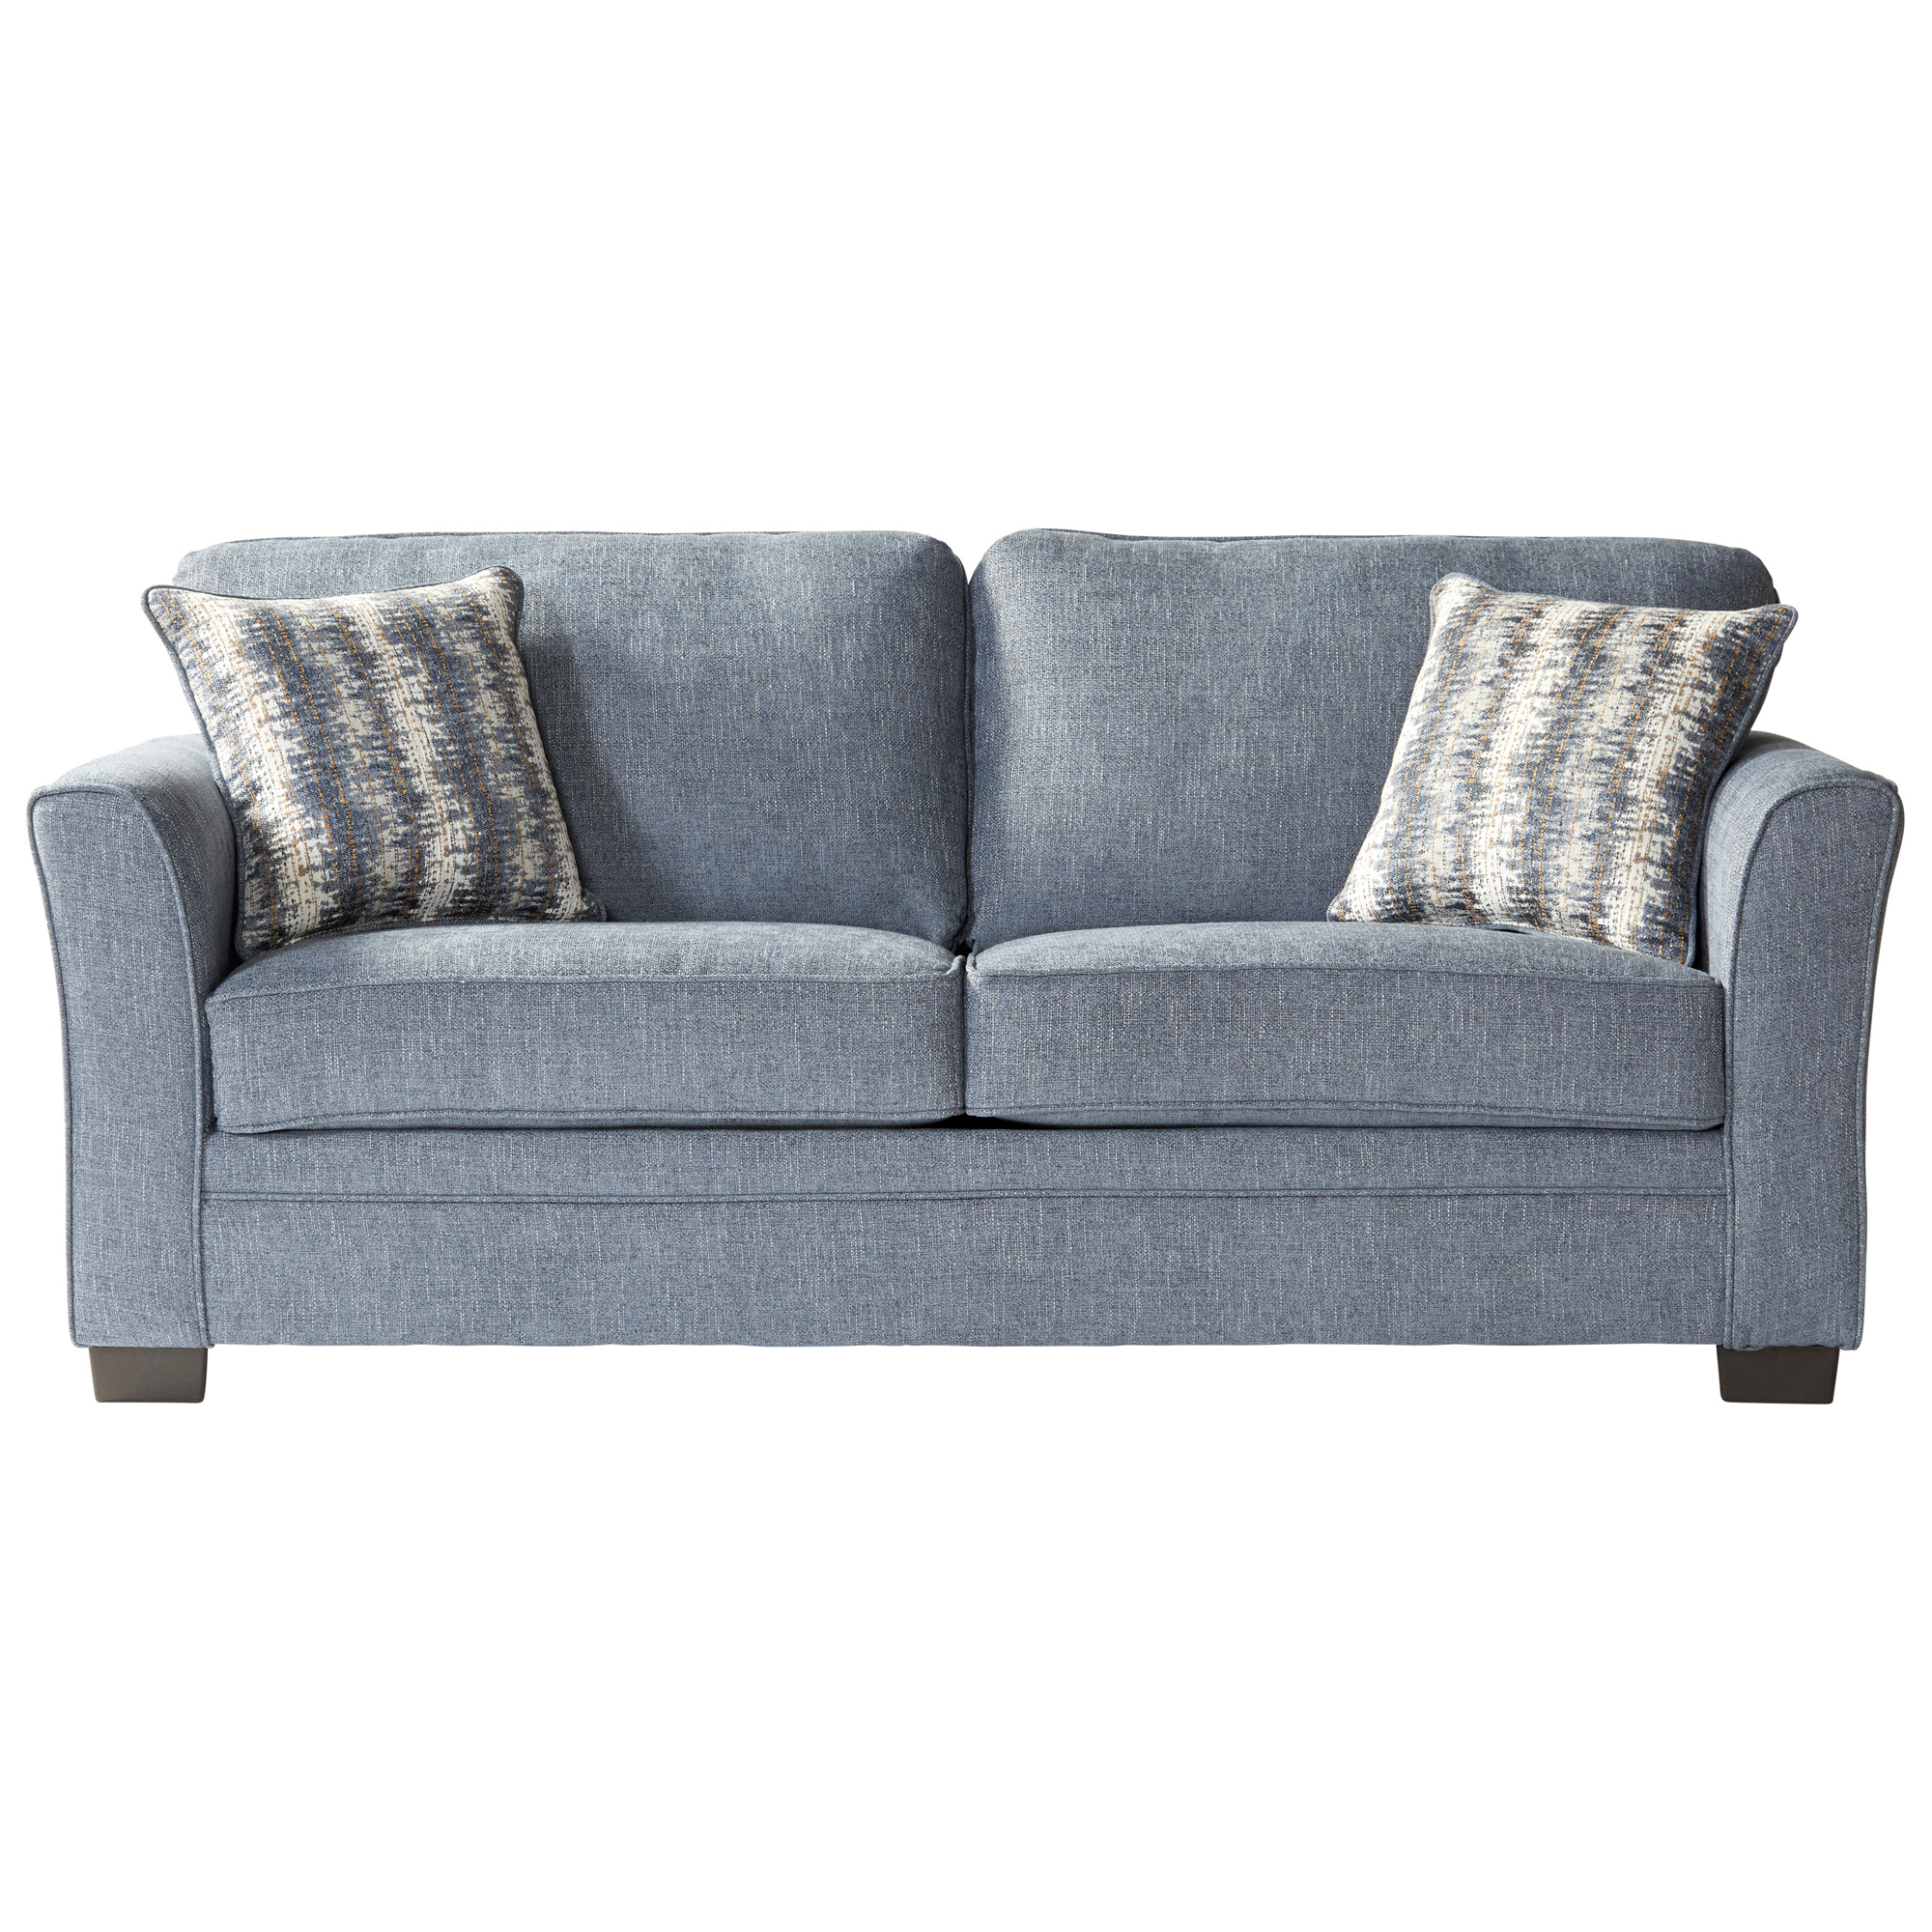 Serta Upholstery By Hughes Furniture | Bolster Ocean Full Sleeper Sofa